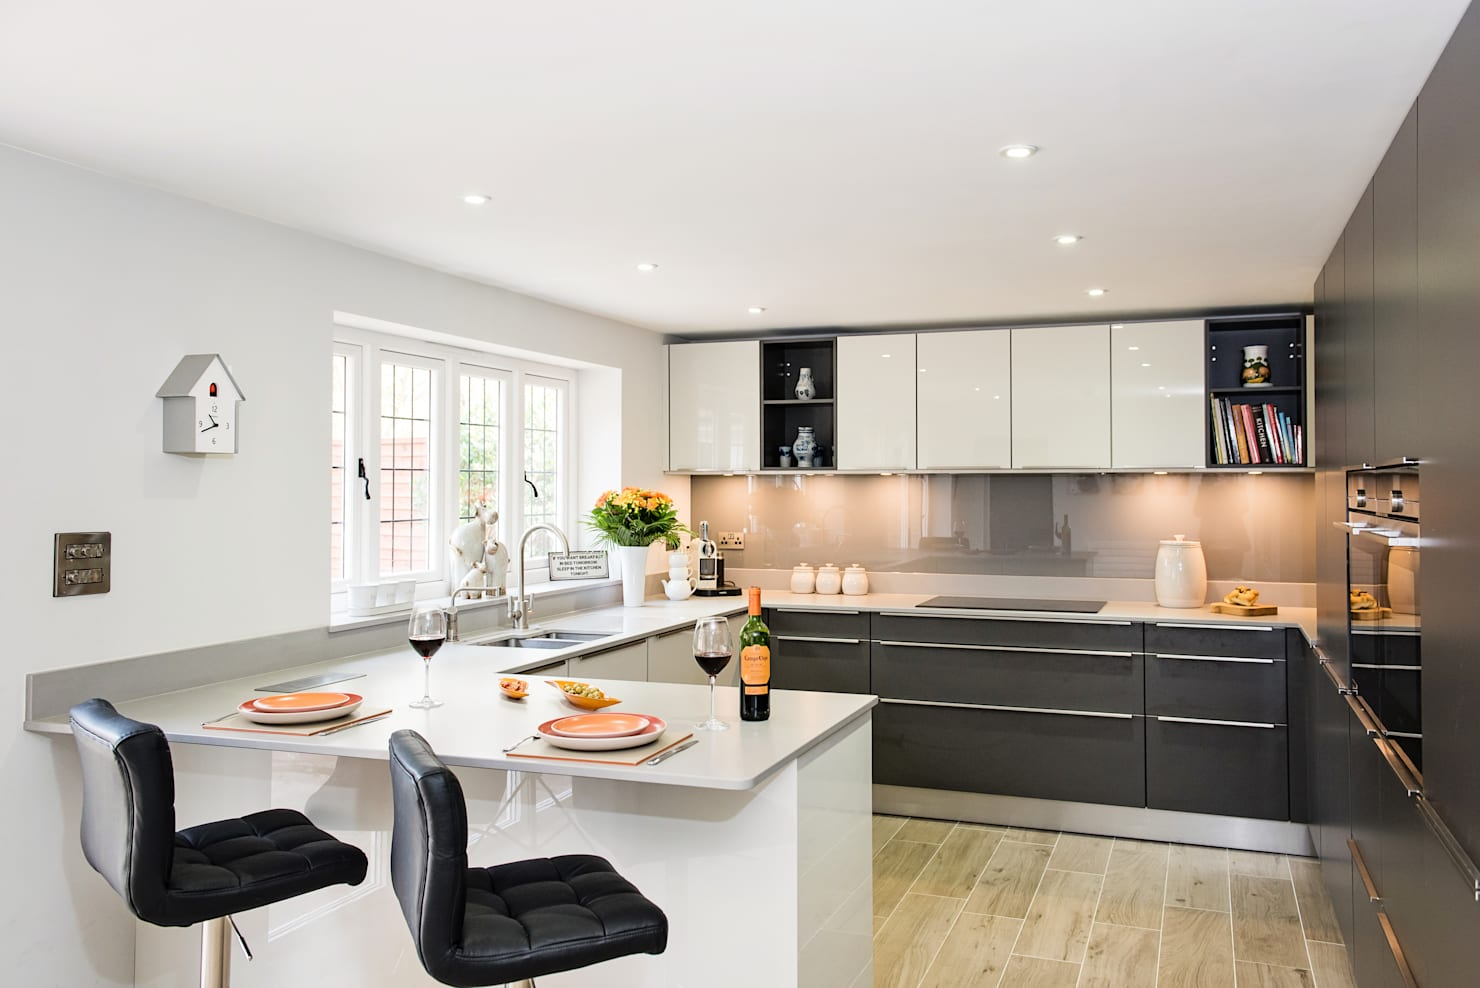 6 simple steps to make your small kitchen work